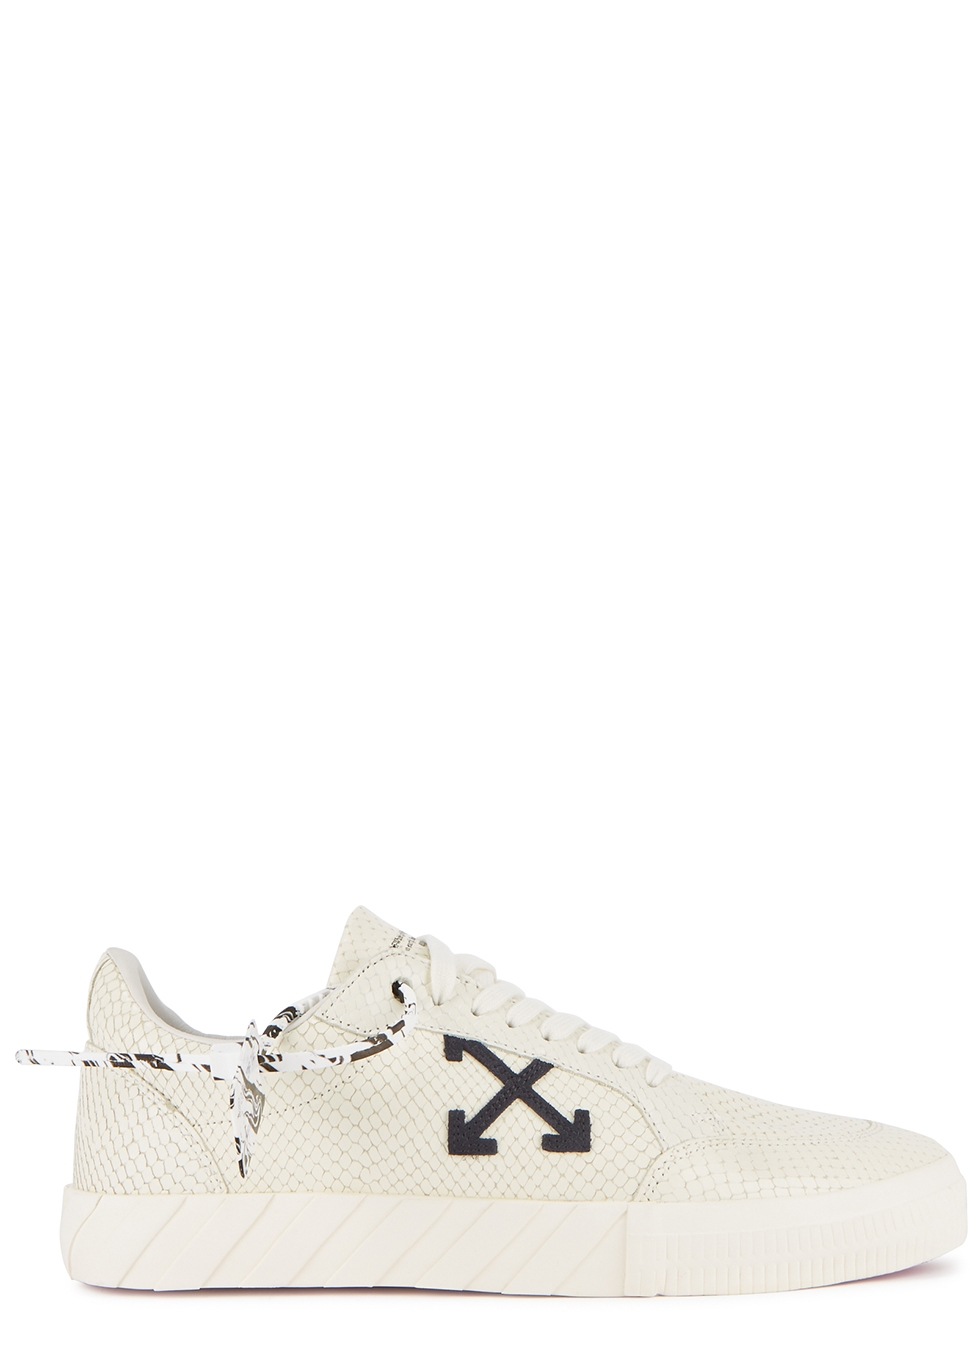 Low Vulcanized python-effect leather sneakers